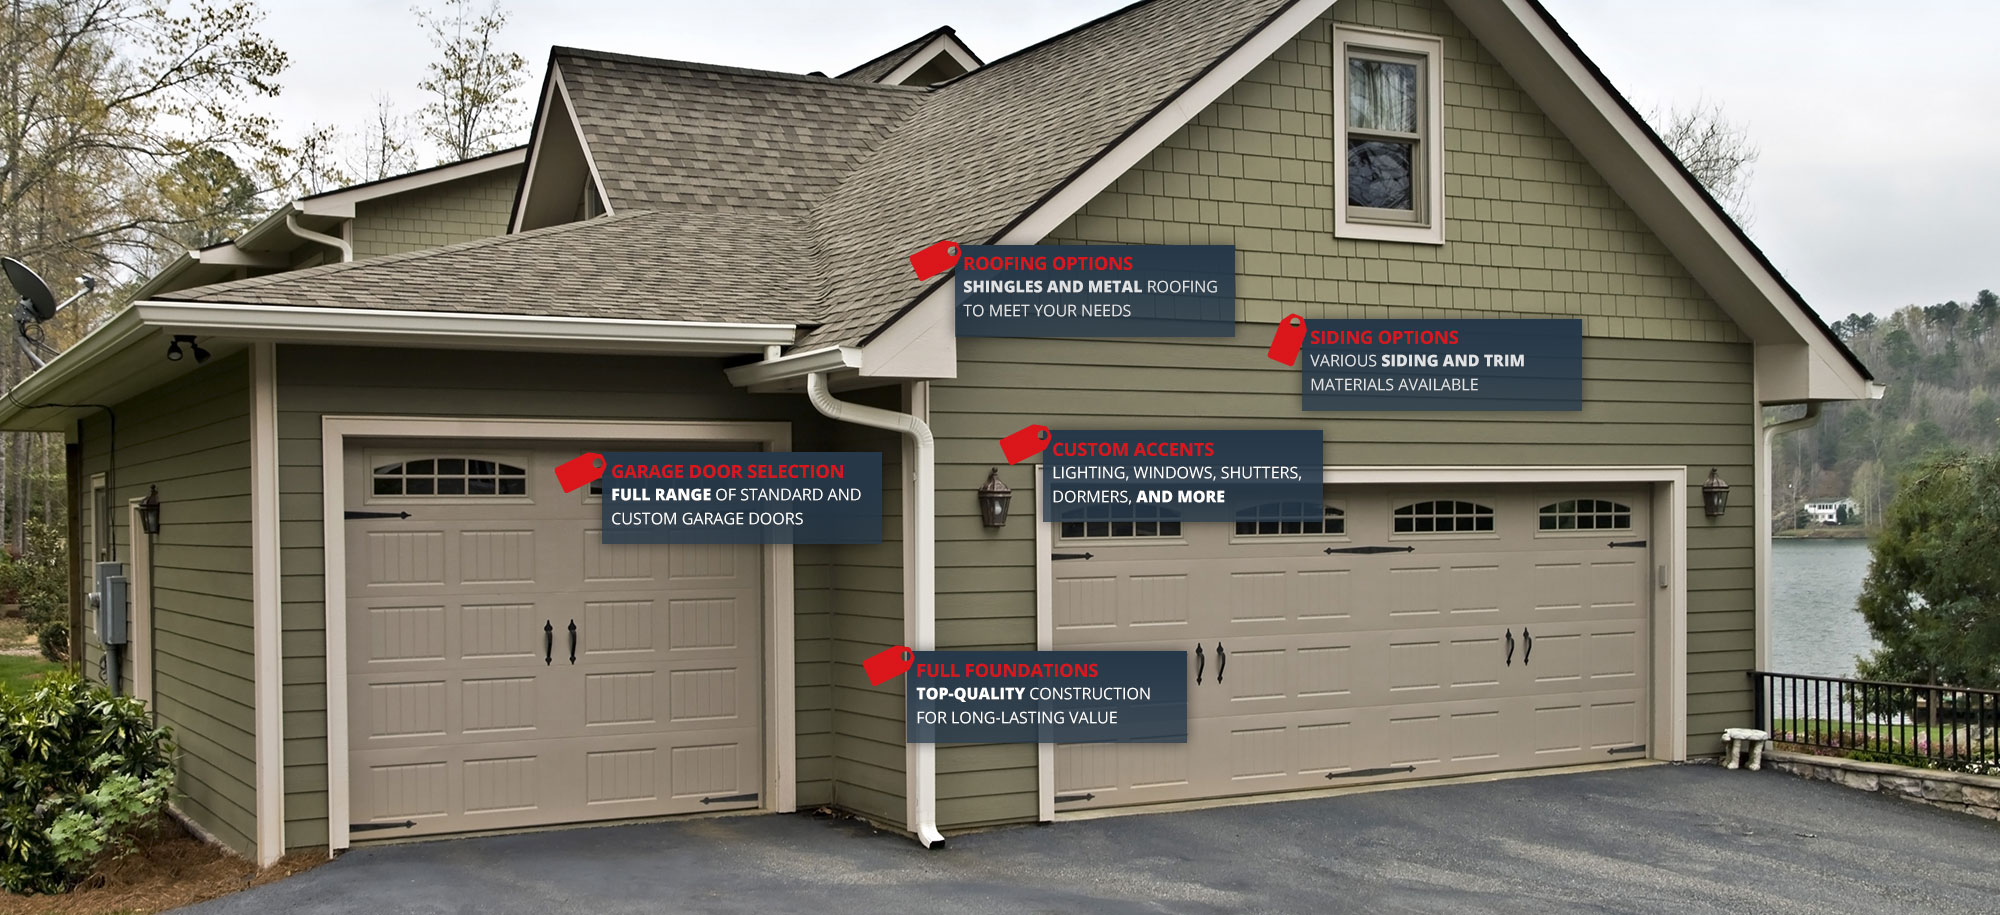 Custom Garage Builders Raleigh, Nc, Wake Forest, Cary Hws